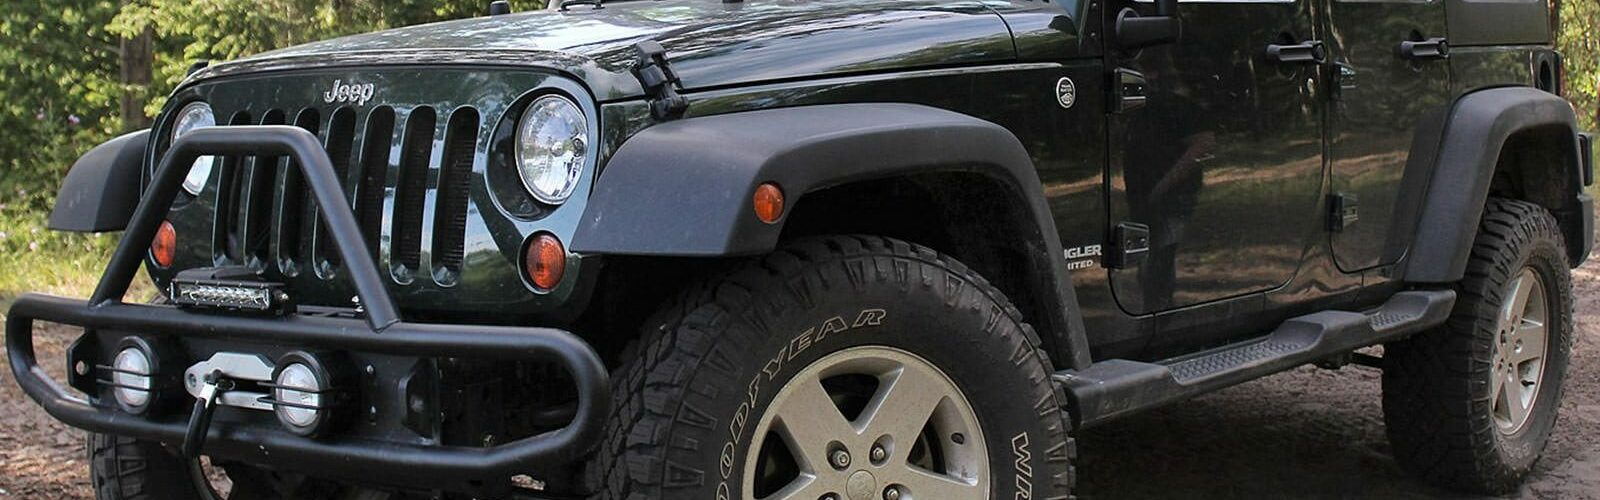 Best Tuners for Jeep JK (Review & Buyers' Guide)